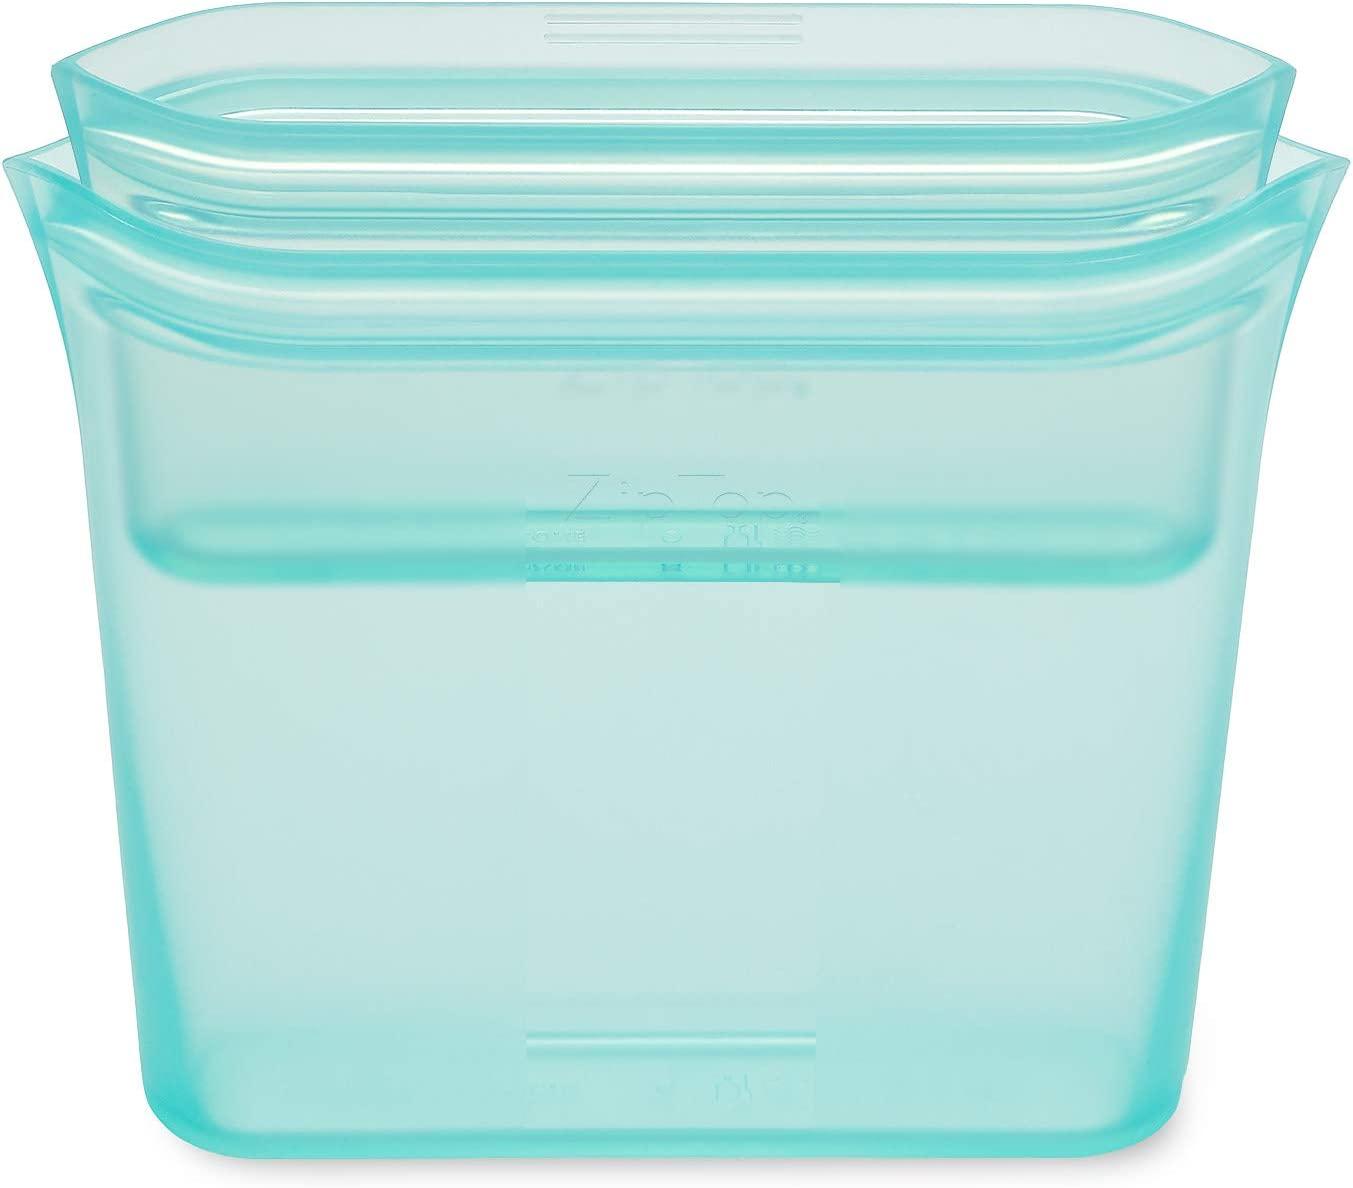 Zip Top Reusable 100% Silicone Food Storage Bags and Containers,